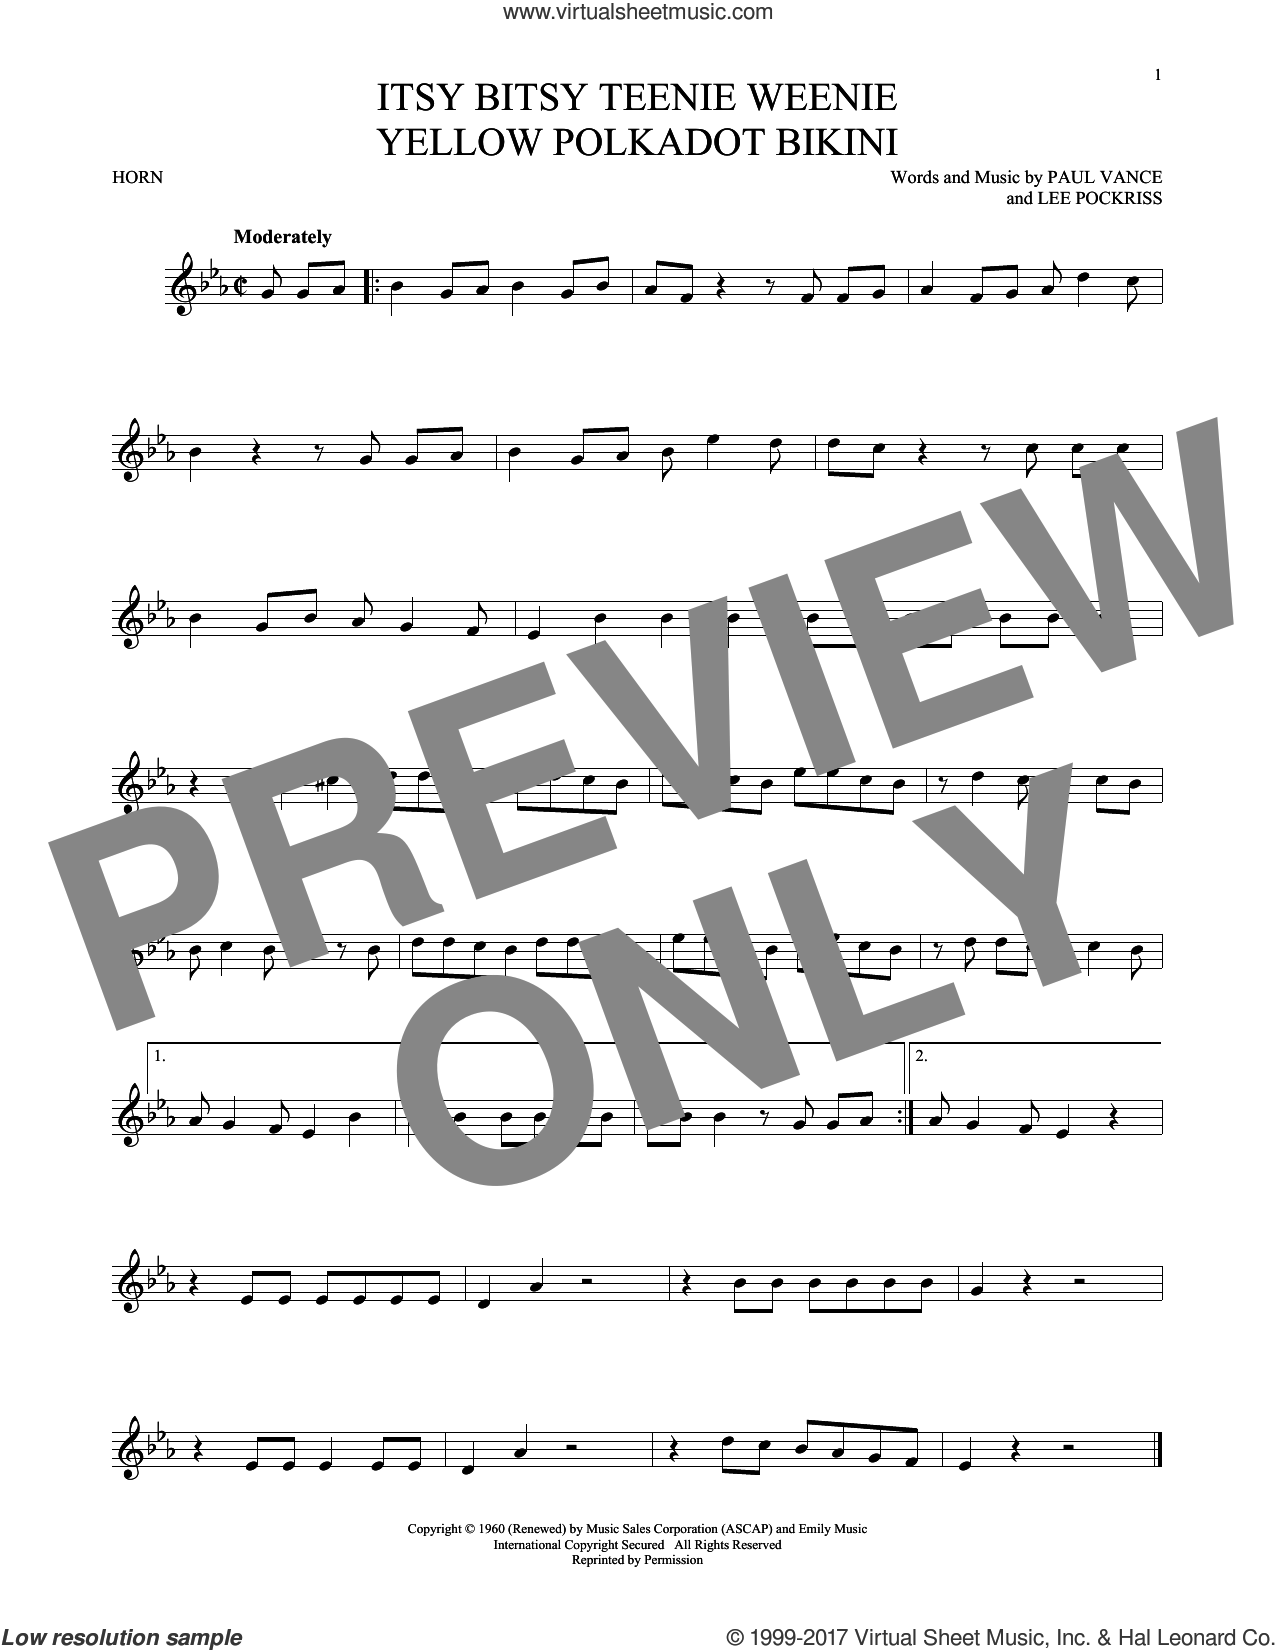 Itsy Bitsy Teenie Weenie Yellow Polkadot Bikini sheet music for horn solo by Brian Hyland, Lee Pockriss and Paul Vance. Score Image Preview.